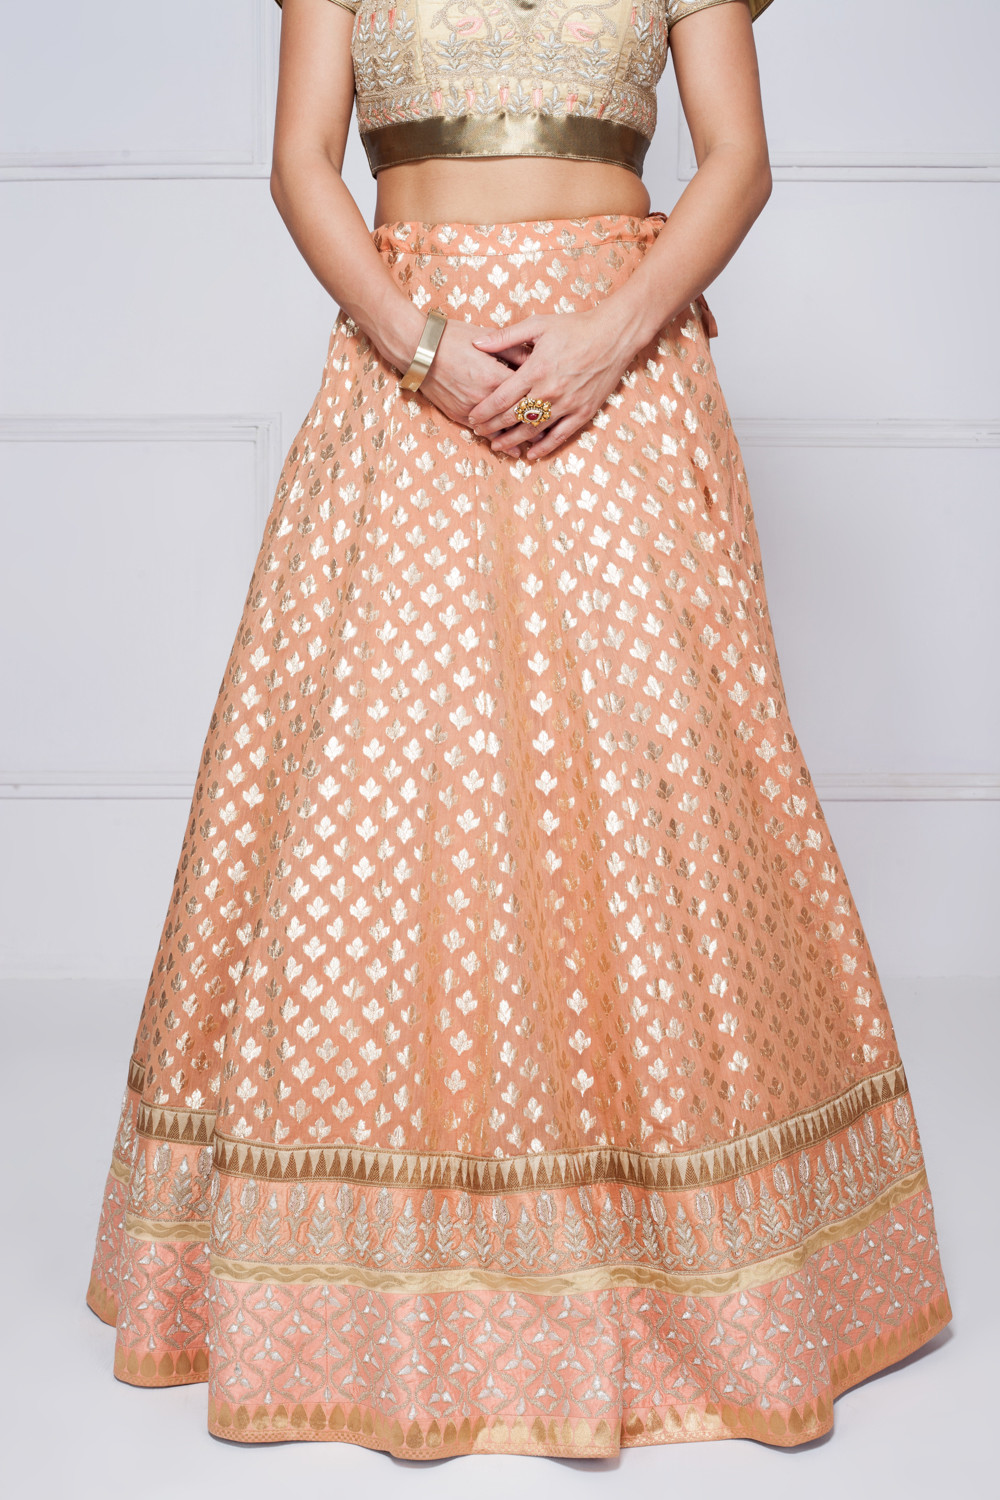 Top 12 wedding lehenga outfit looks budget 20k frugal2fab for 20000 wedding budget